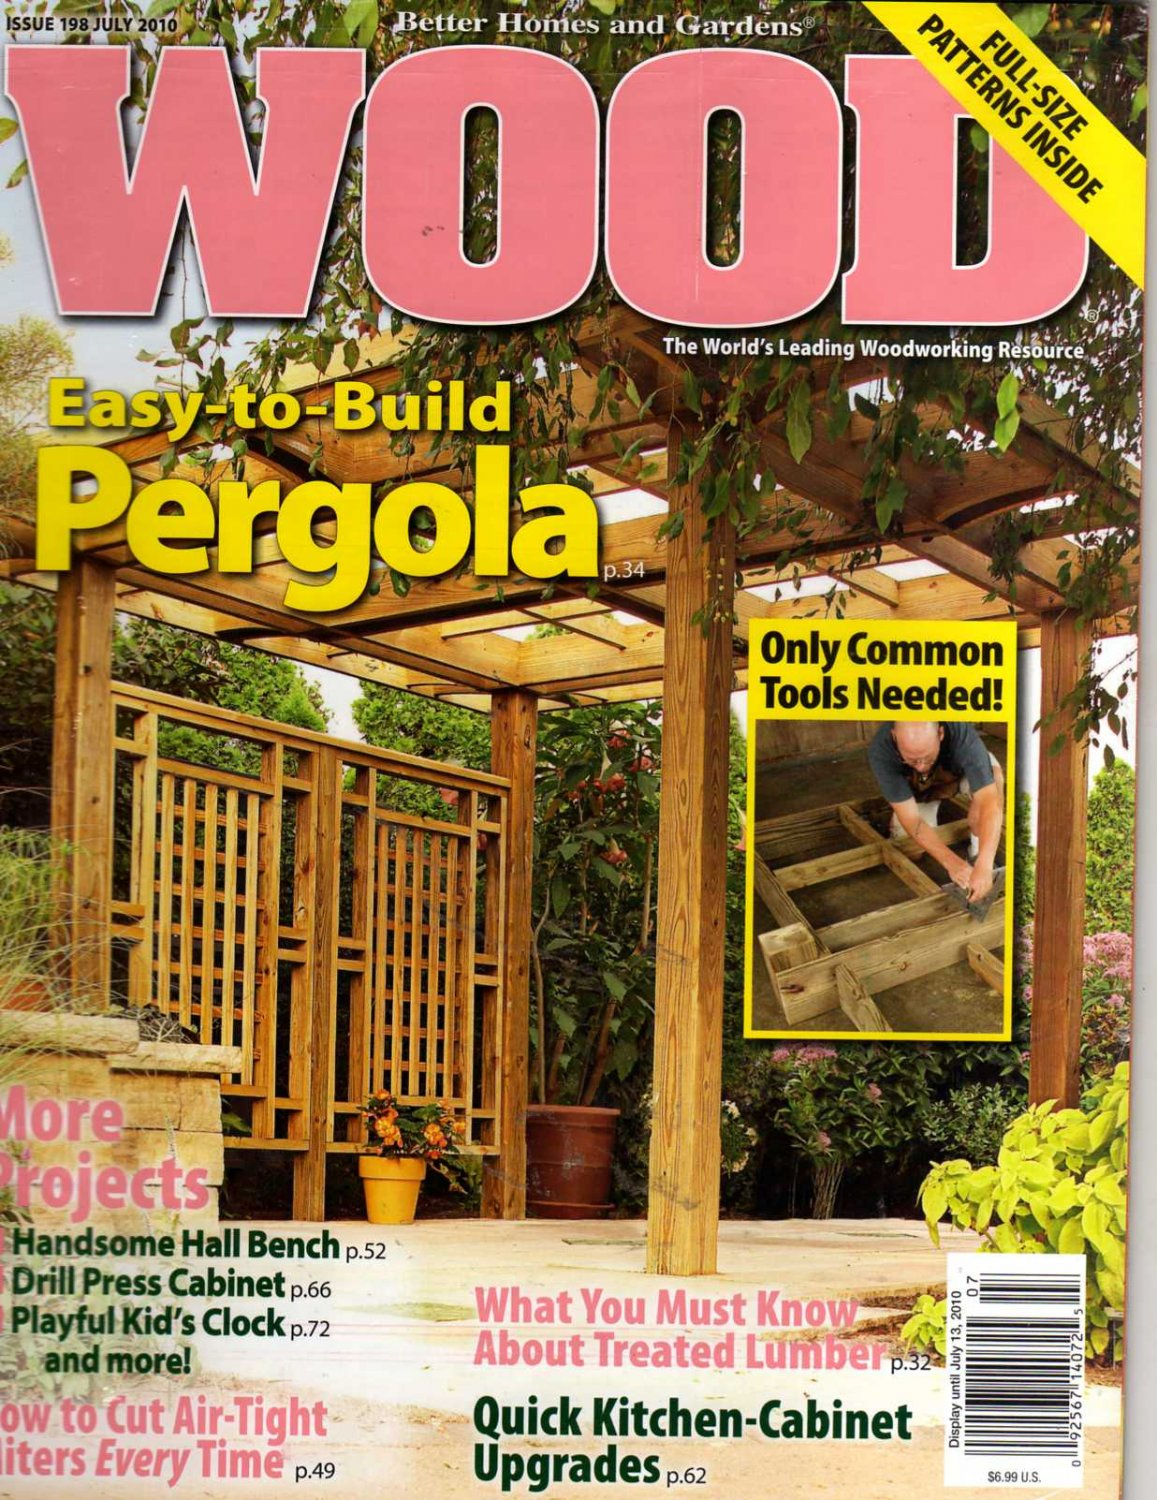 Better Homes And Gardens Wood Magazine July 2010 Issue 198